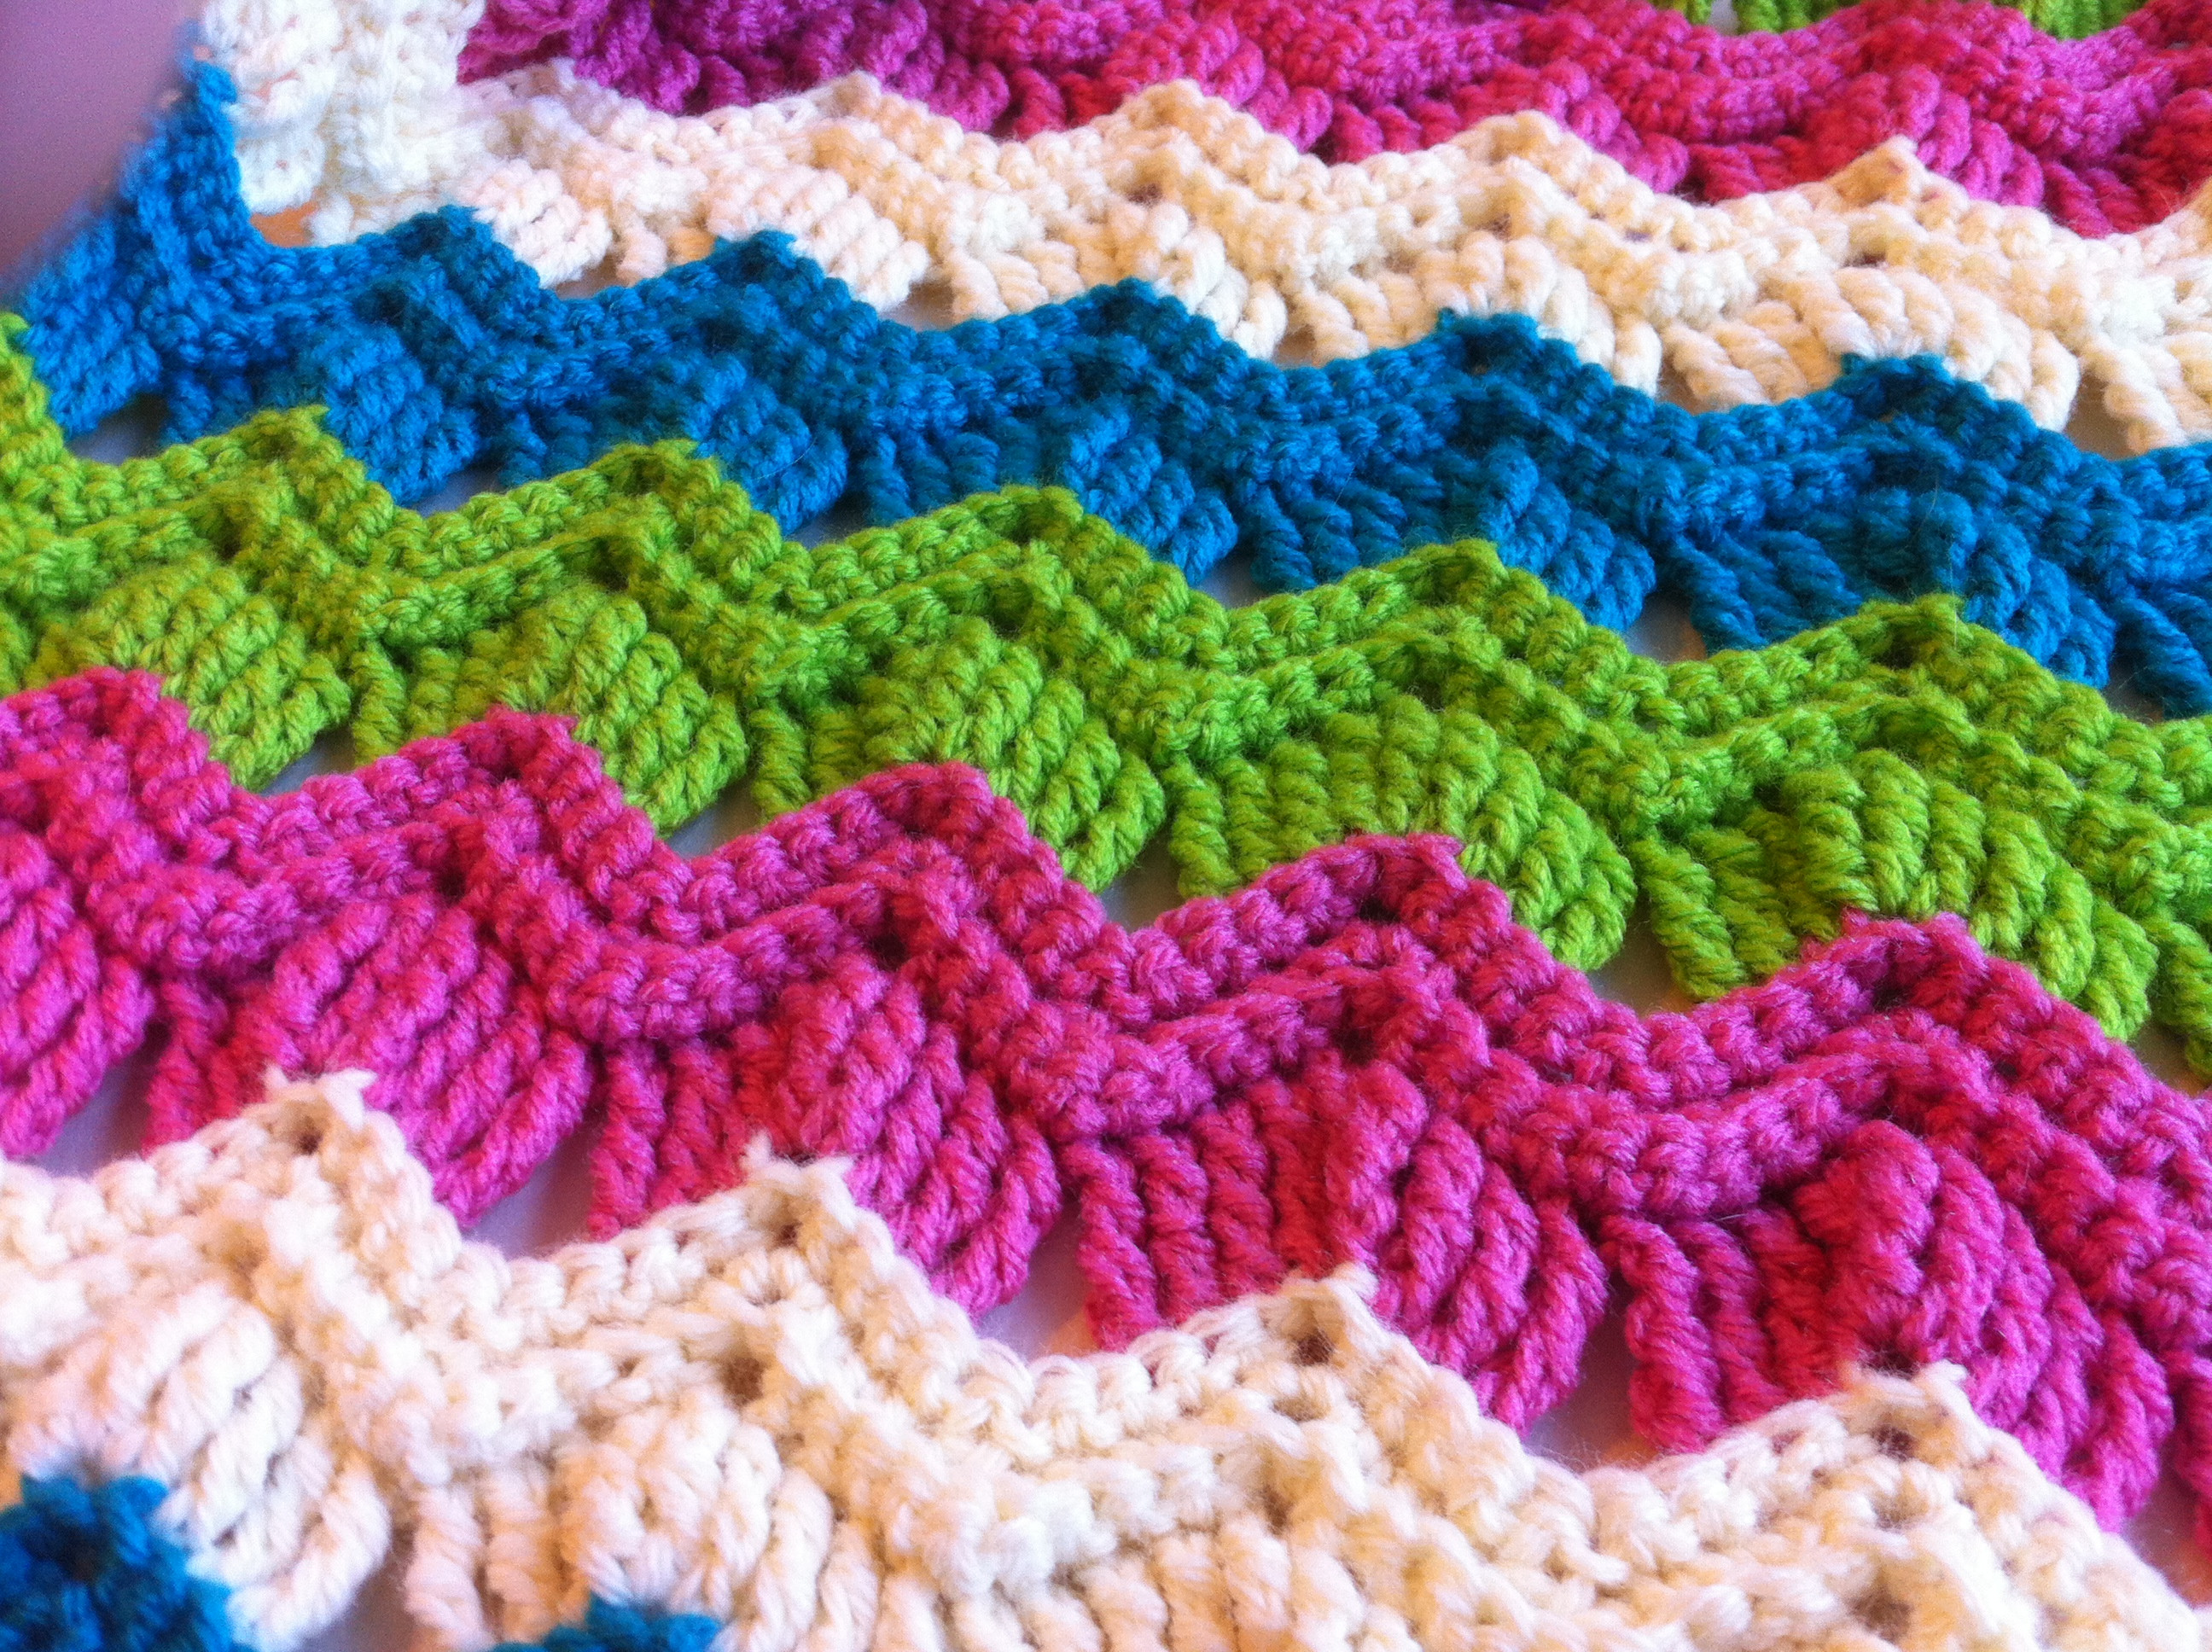 Lovely Free Crochet Pattern Vintage Ripple Fan Scarf Free Crochet Stitches Of Awesome 41 Models Free Crochet Stitches